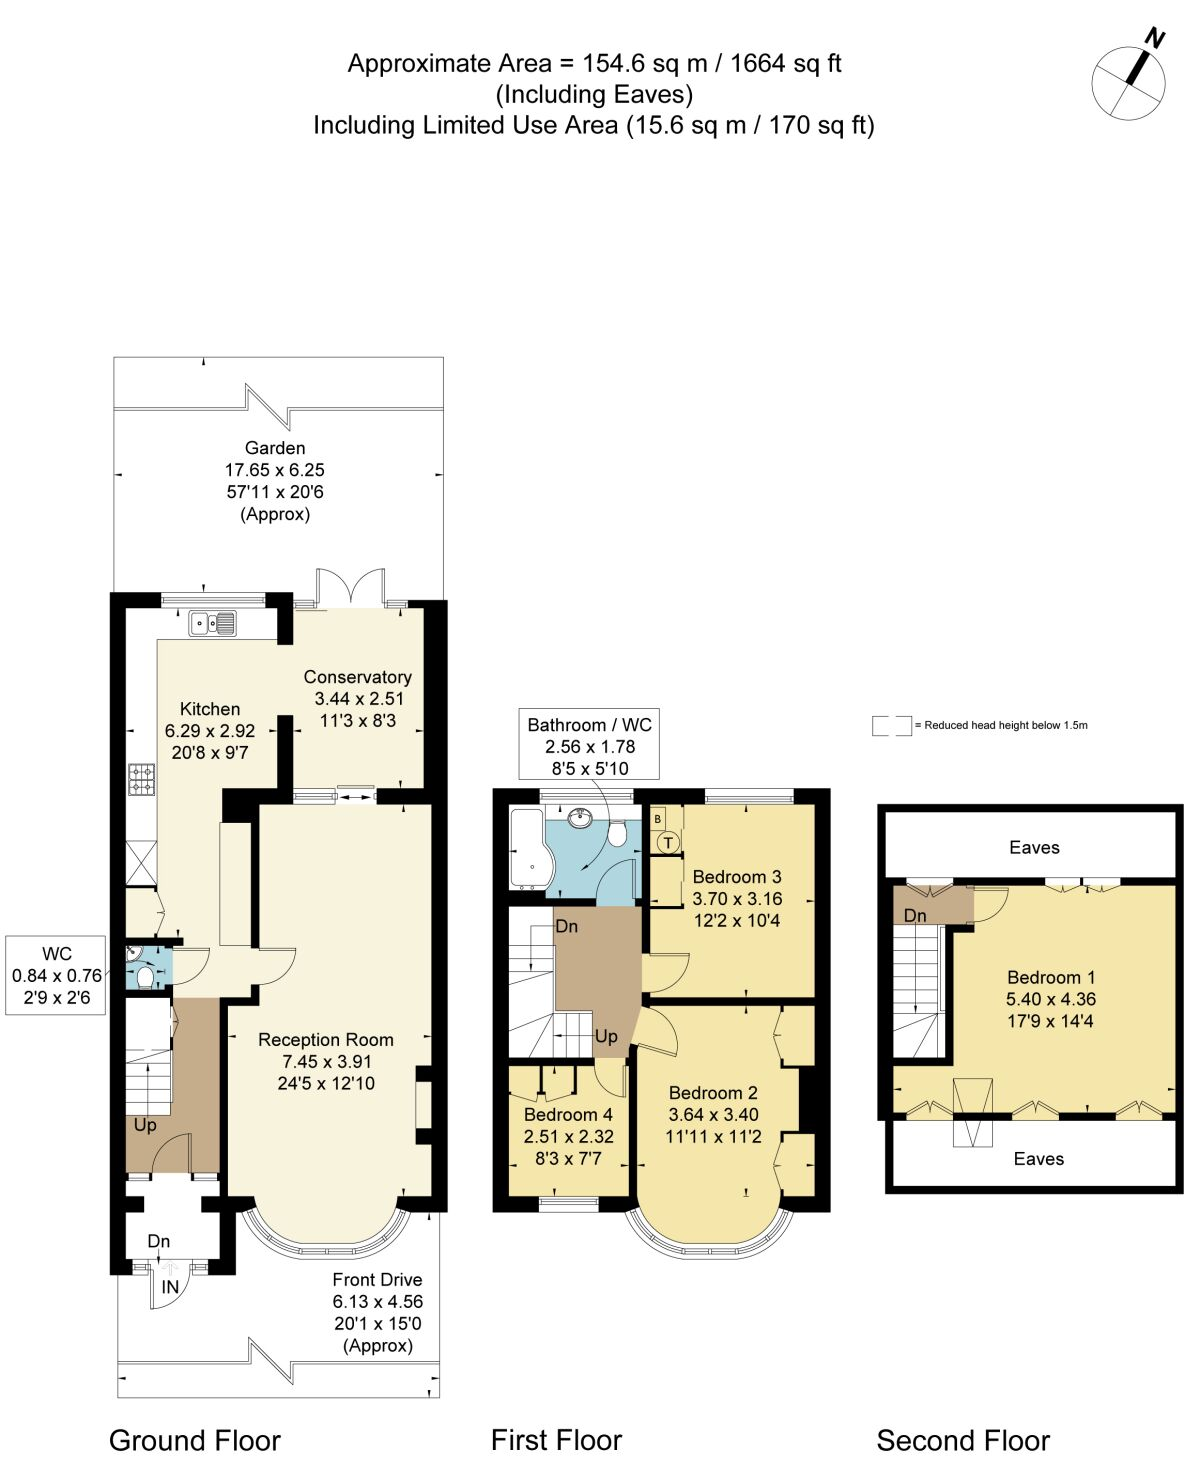 4 bedroom houses for sale in RM10 7 (Dagenham) - Your Move